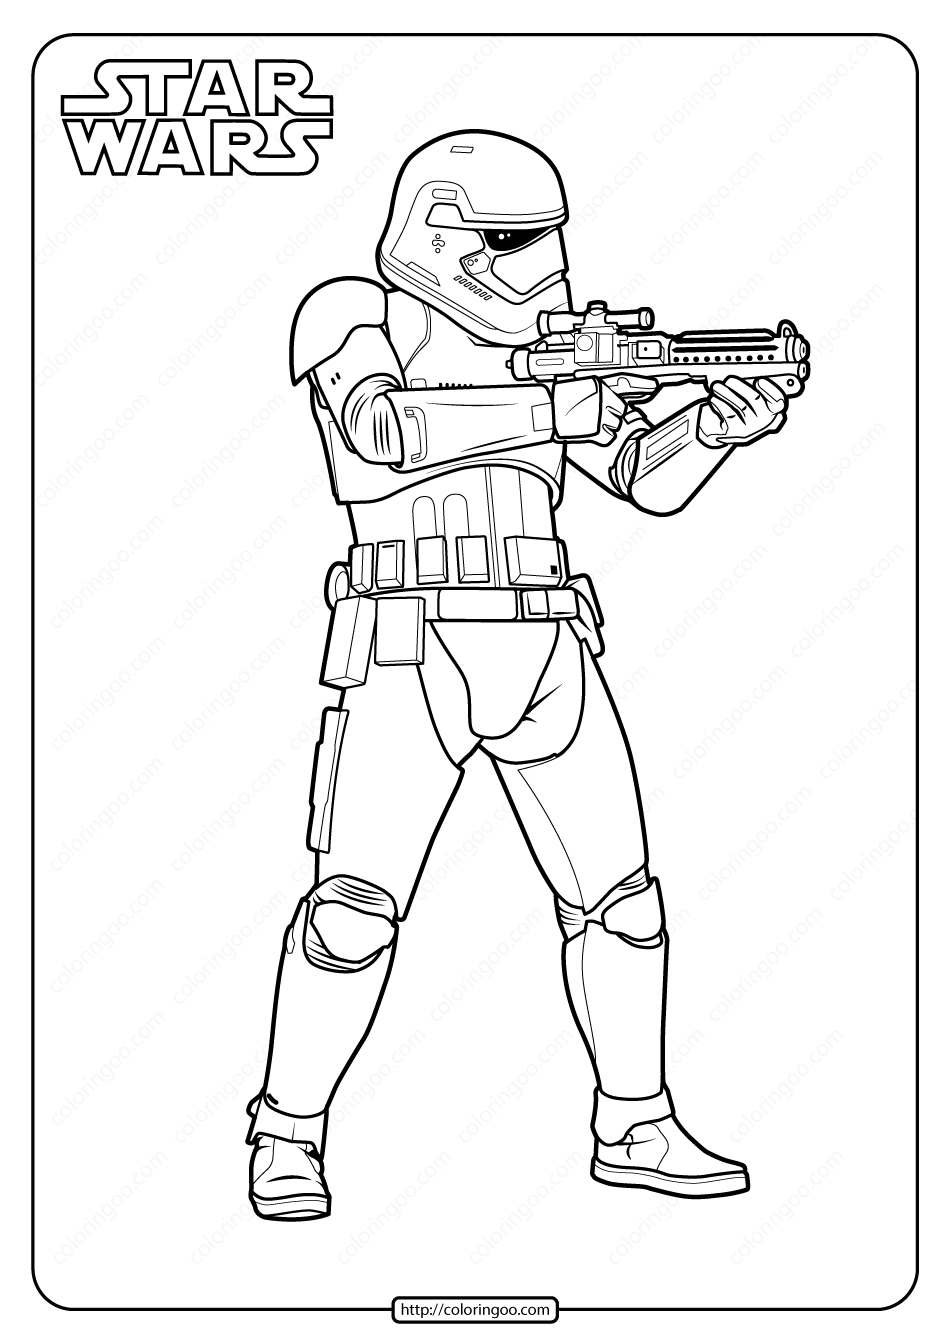 Printable Star Wars Stormtrooper Coloring Page Star Wars Coloring Book Star Coloring Pages Flag Coloring Pages